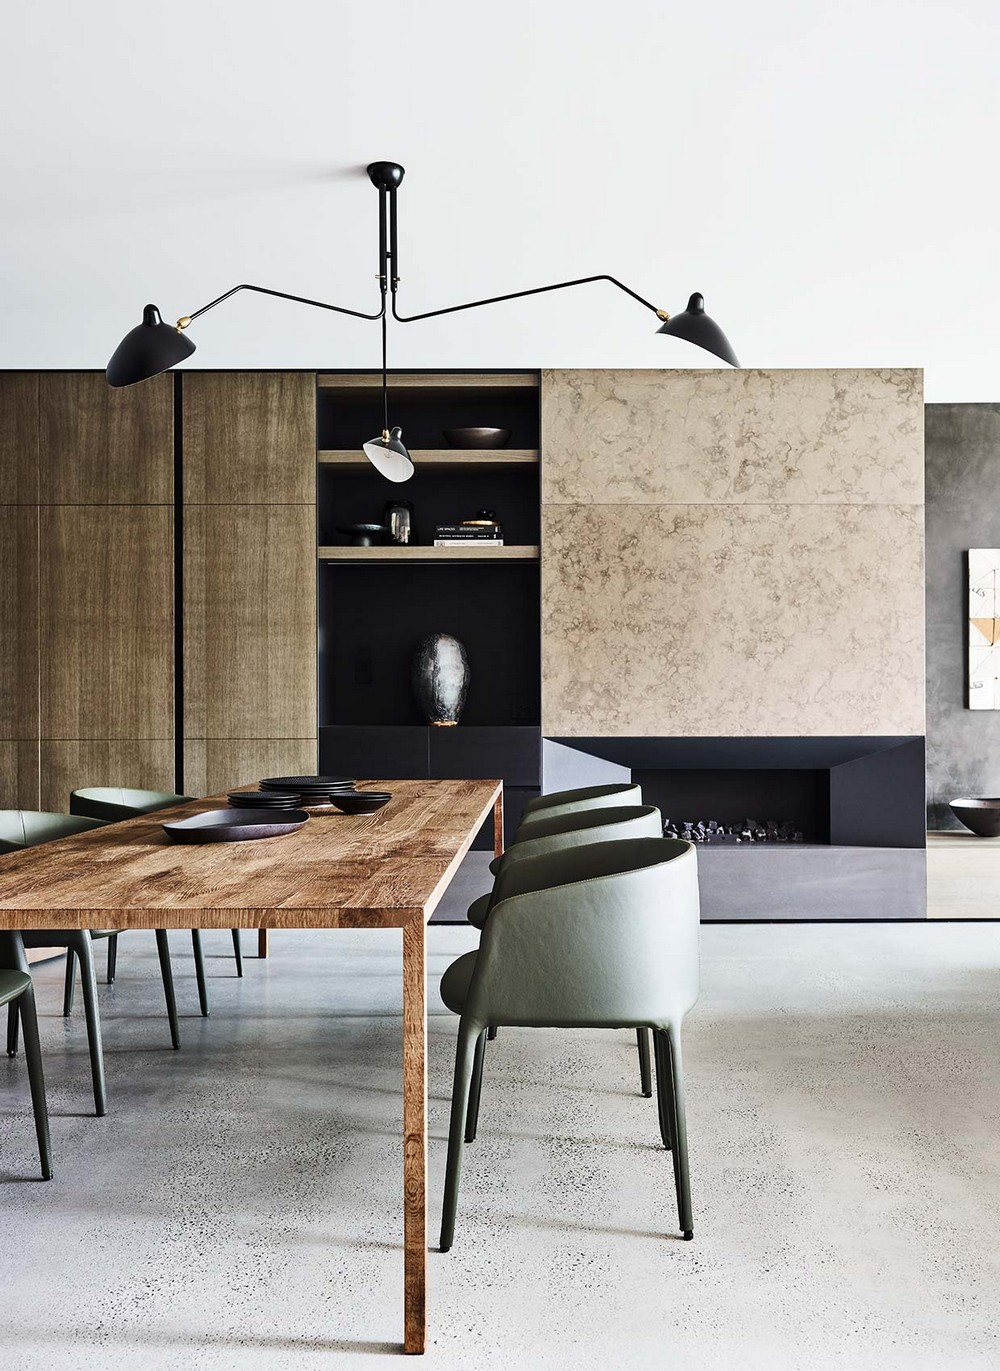 Hare + Klein: Contemporary Dining Rooms From Australia hare + klein Hare + Klein: Contemporary Dining Rooms From Australia 2 hare klein